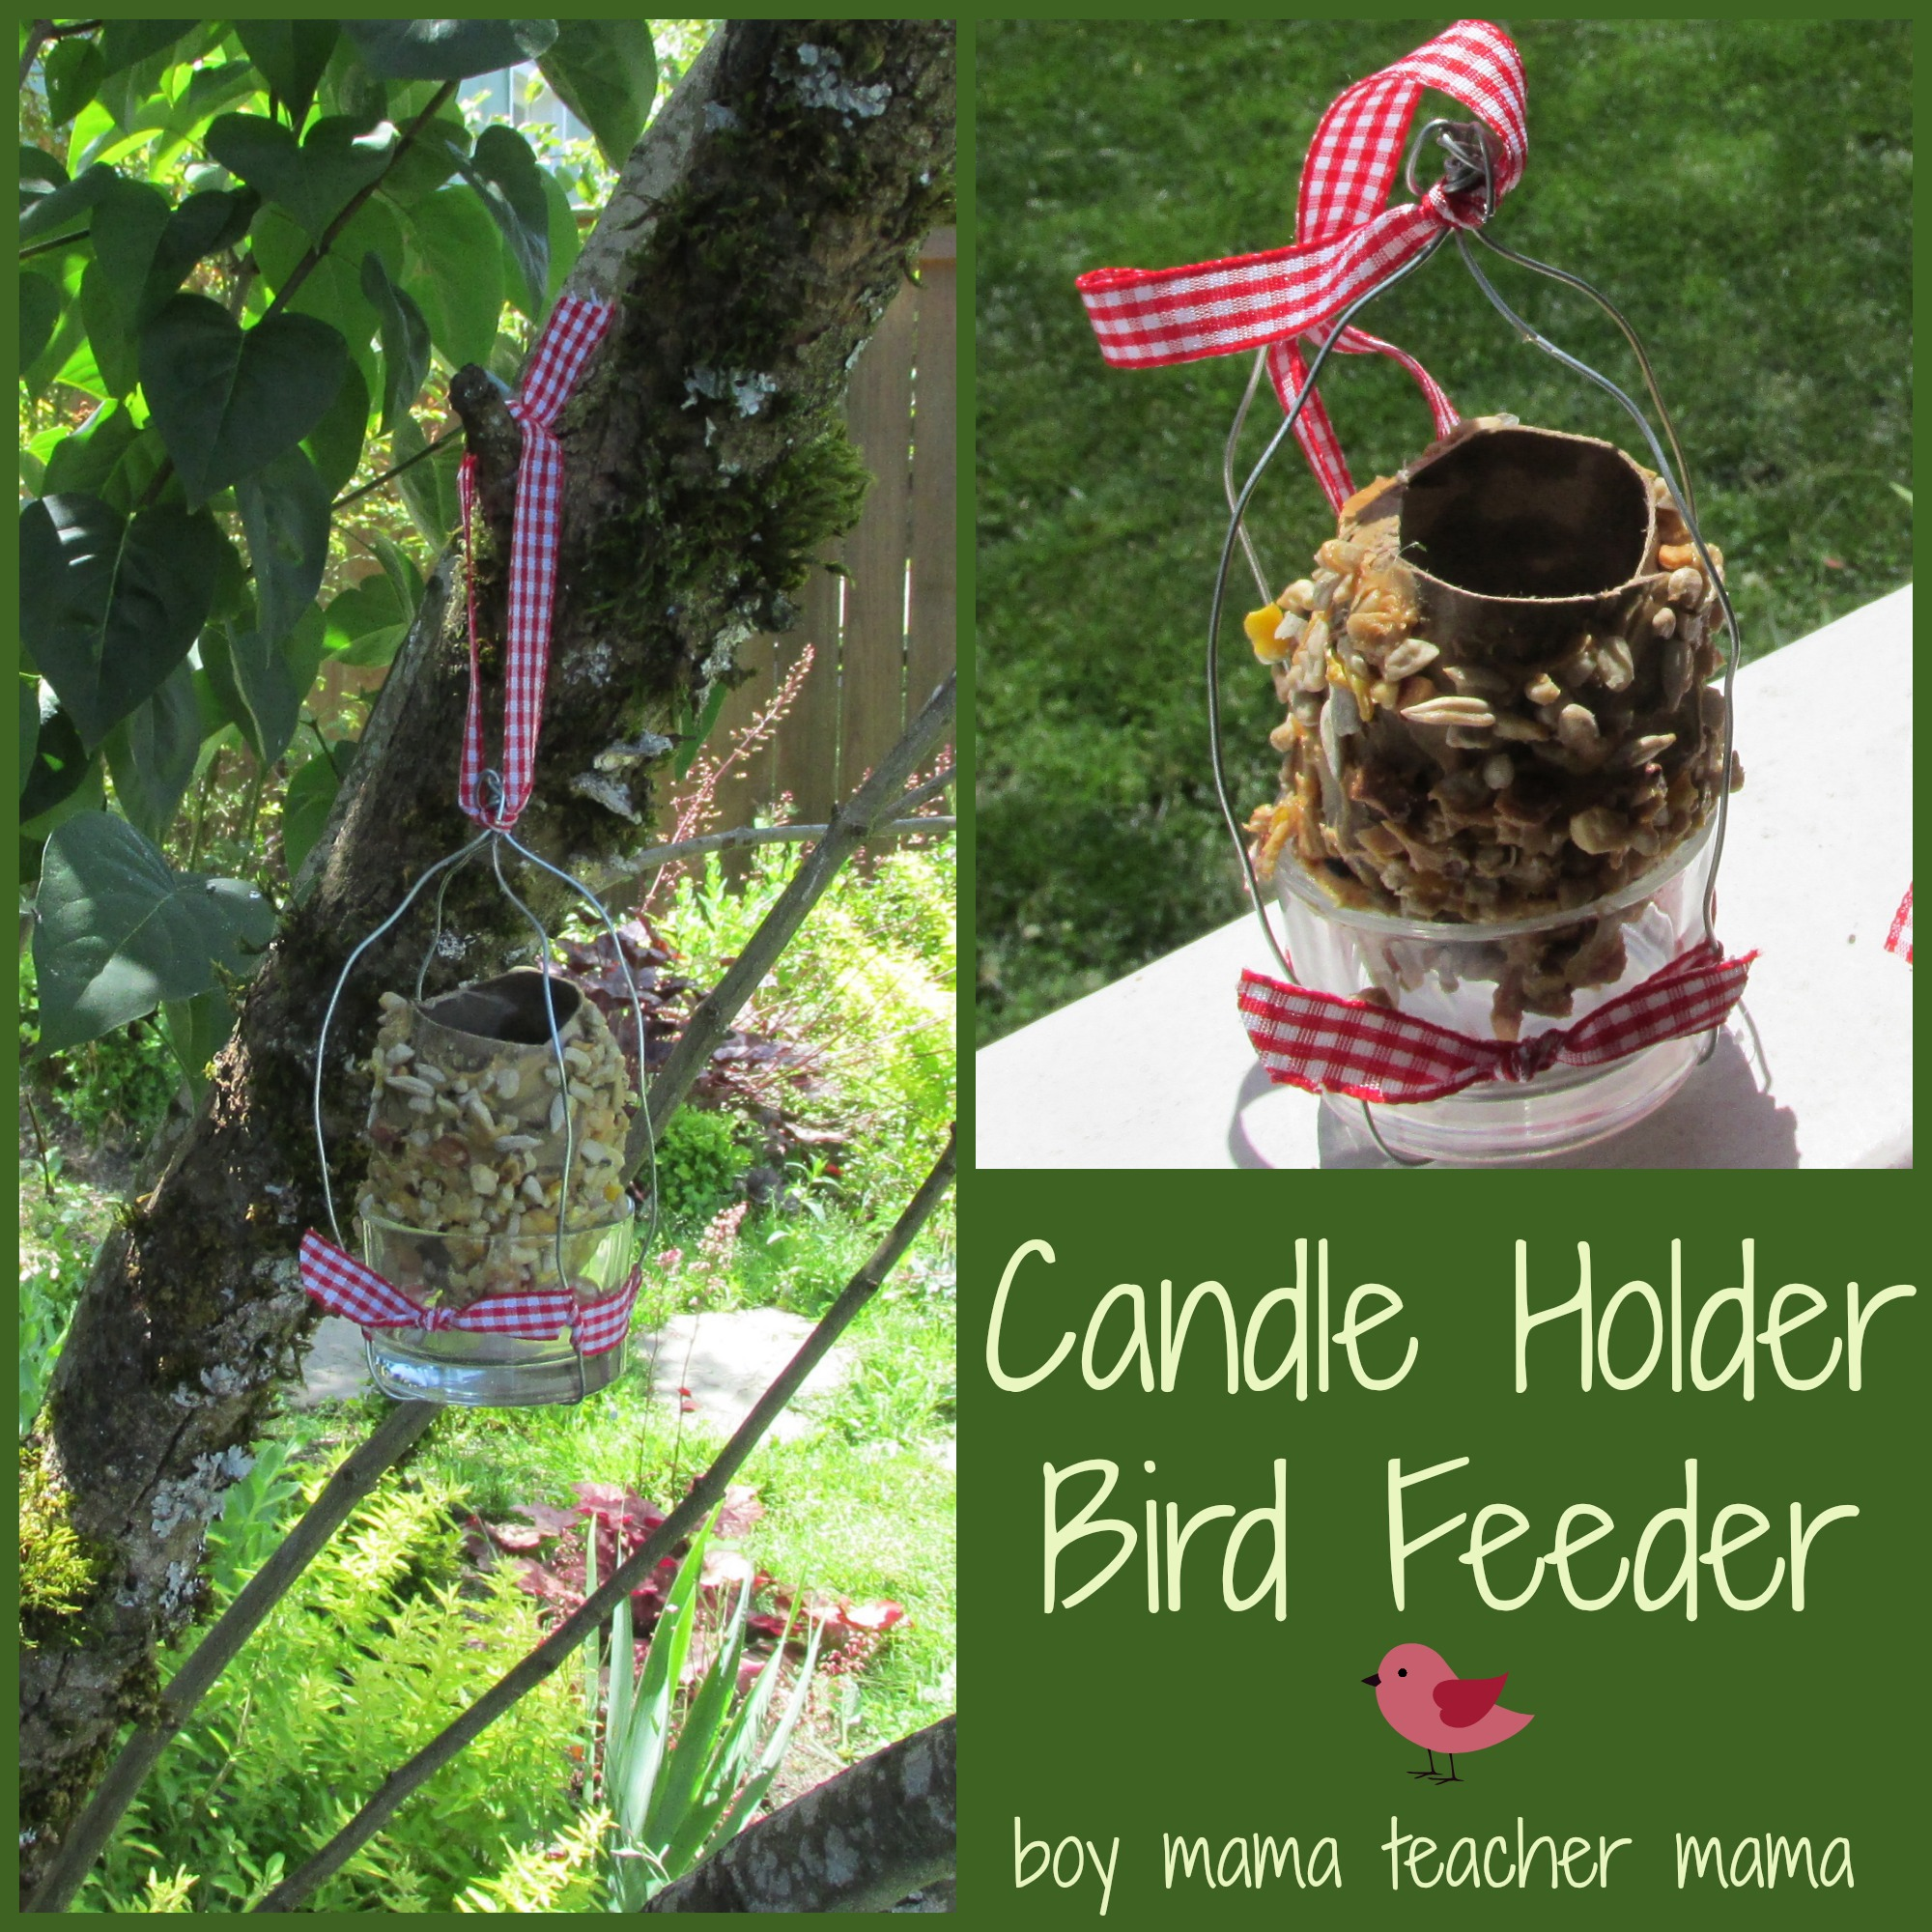 Boy Mama Teacher Mama | Candle Holder Bird Feeder